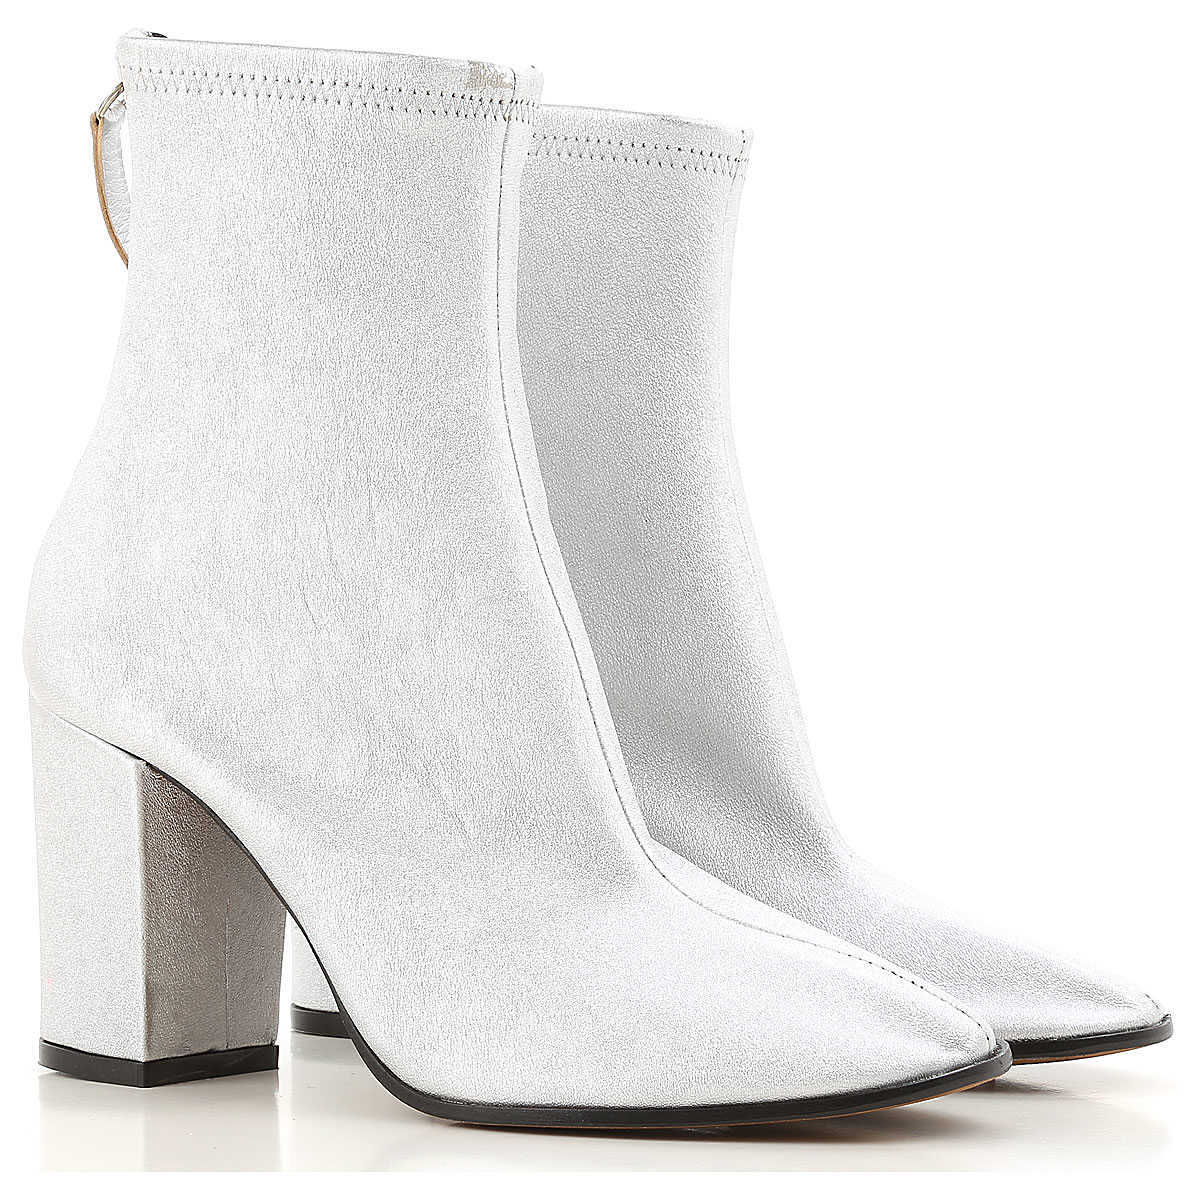 Golden Goose Boots for Women Booties On Sale in Outlet DK - GOOFASH - Womens BOOTS